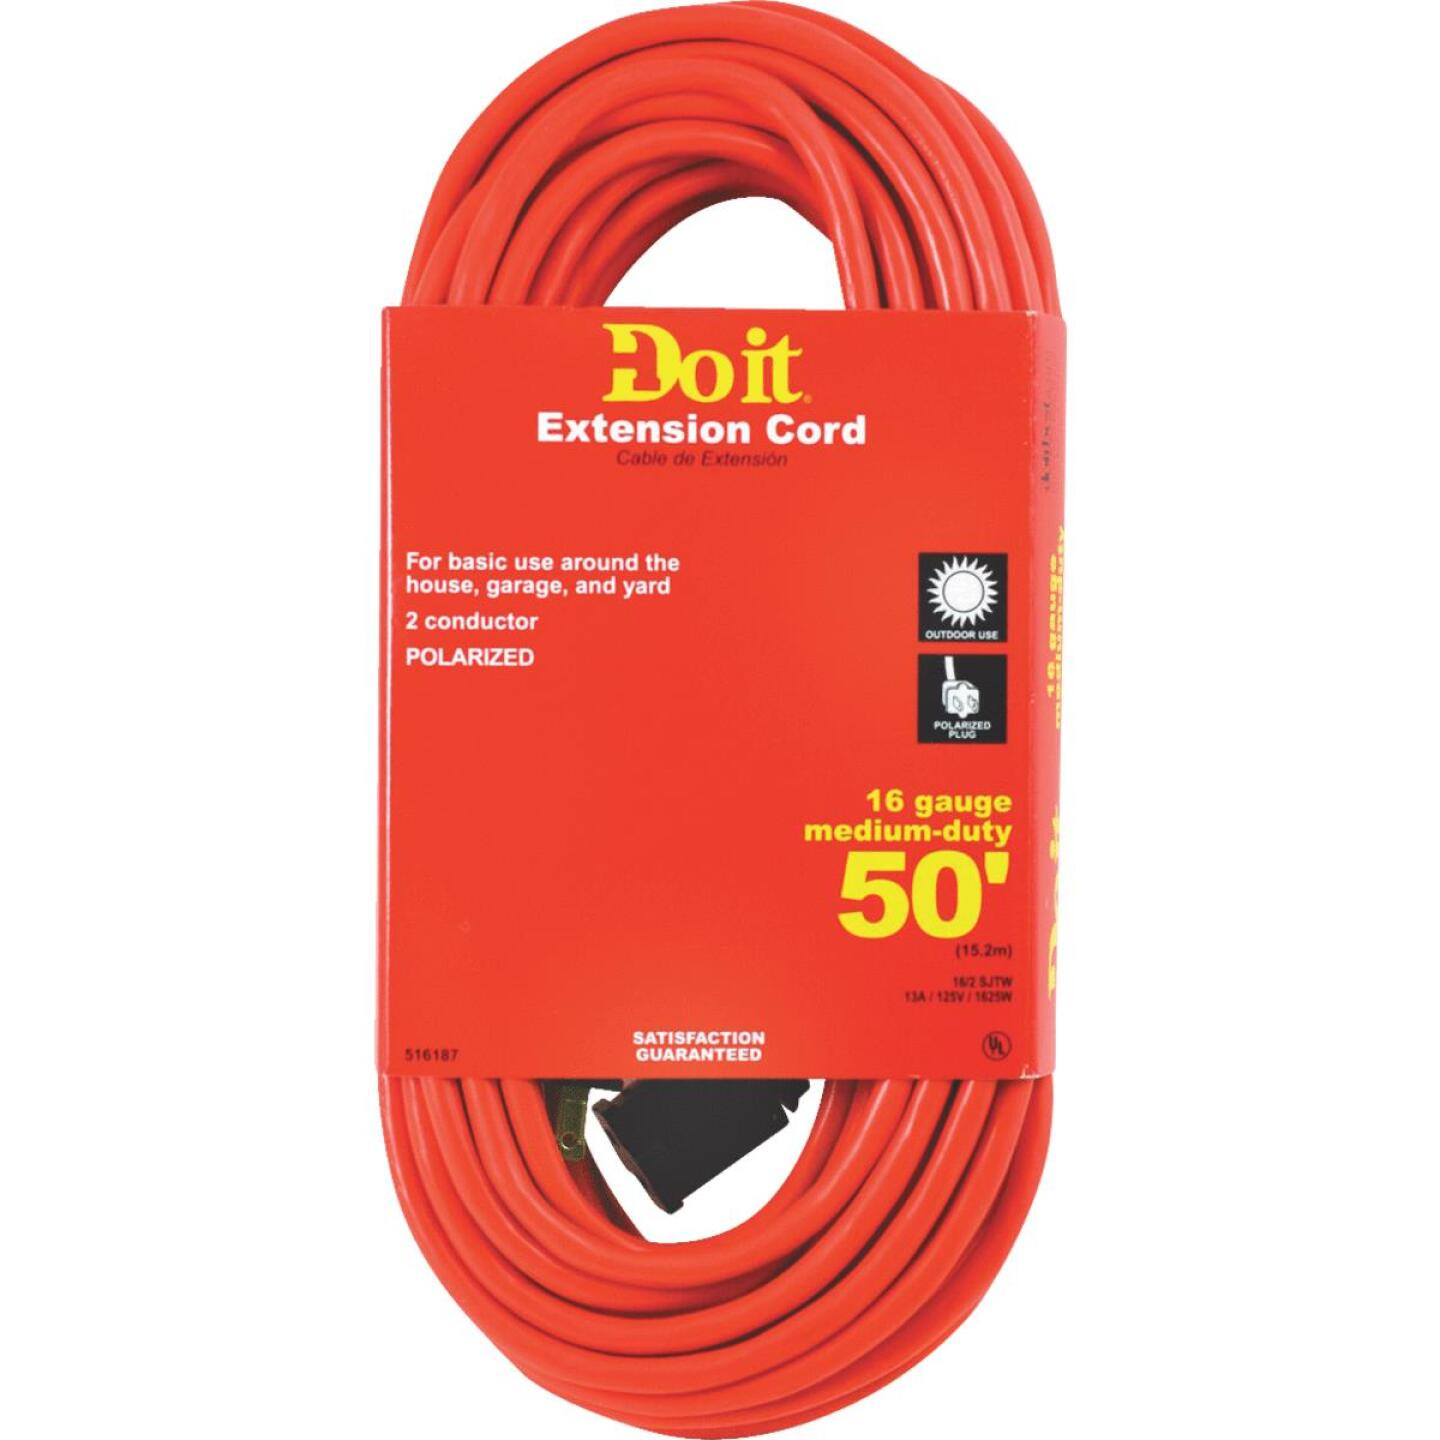 Do it 50 Ft. 16/2 Polarized Outdoor Extension Cord Image 1